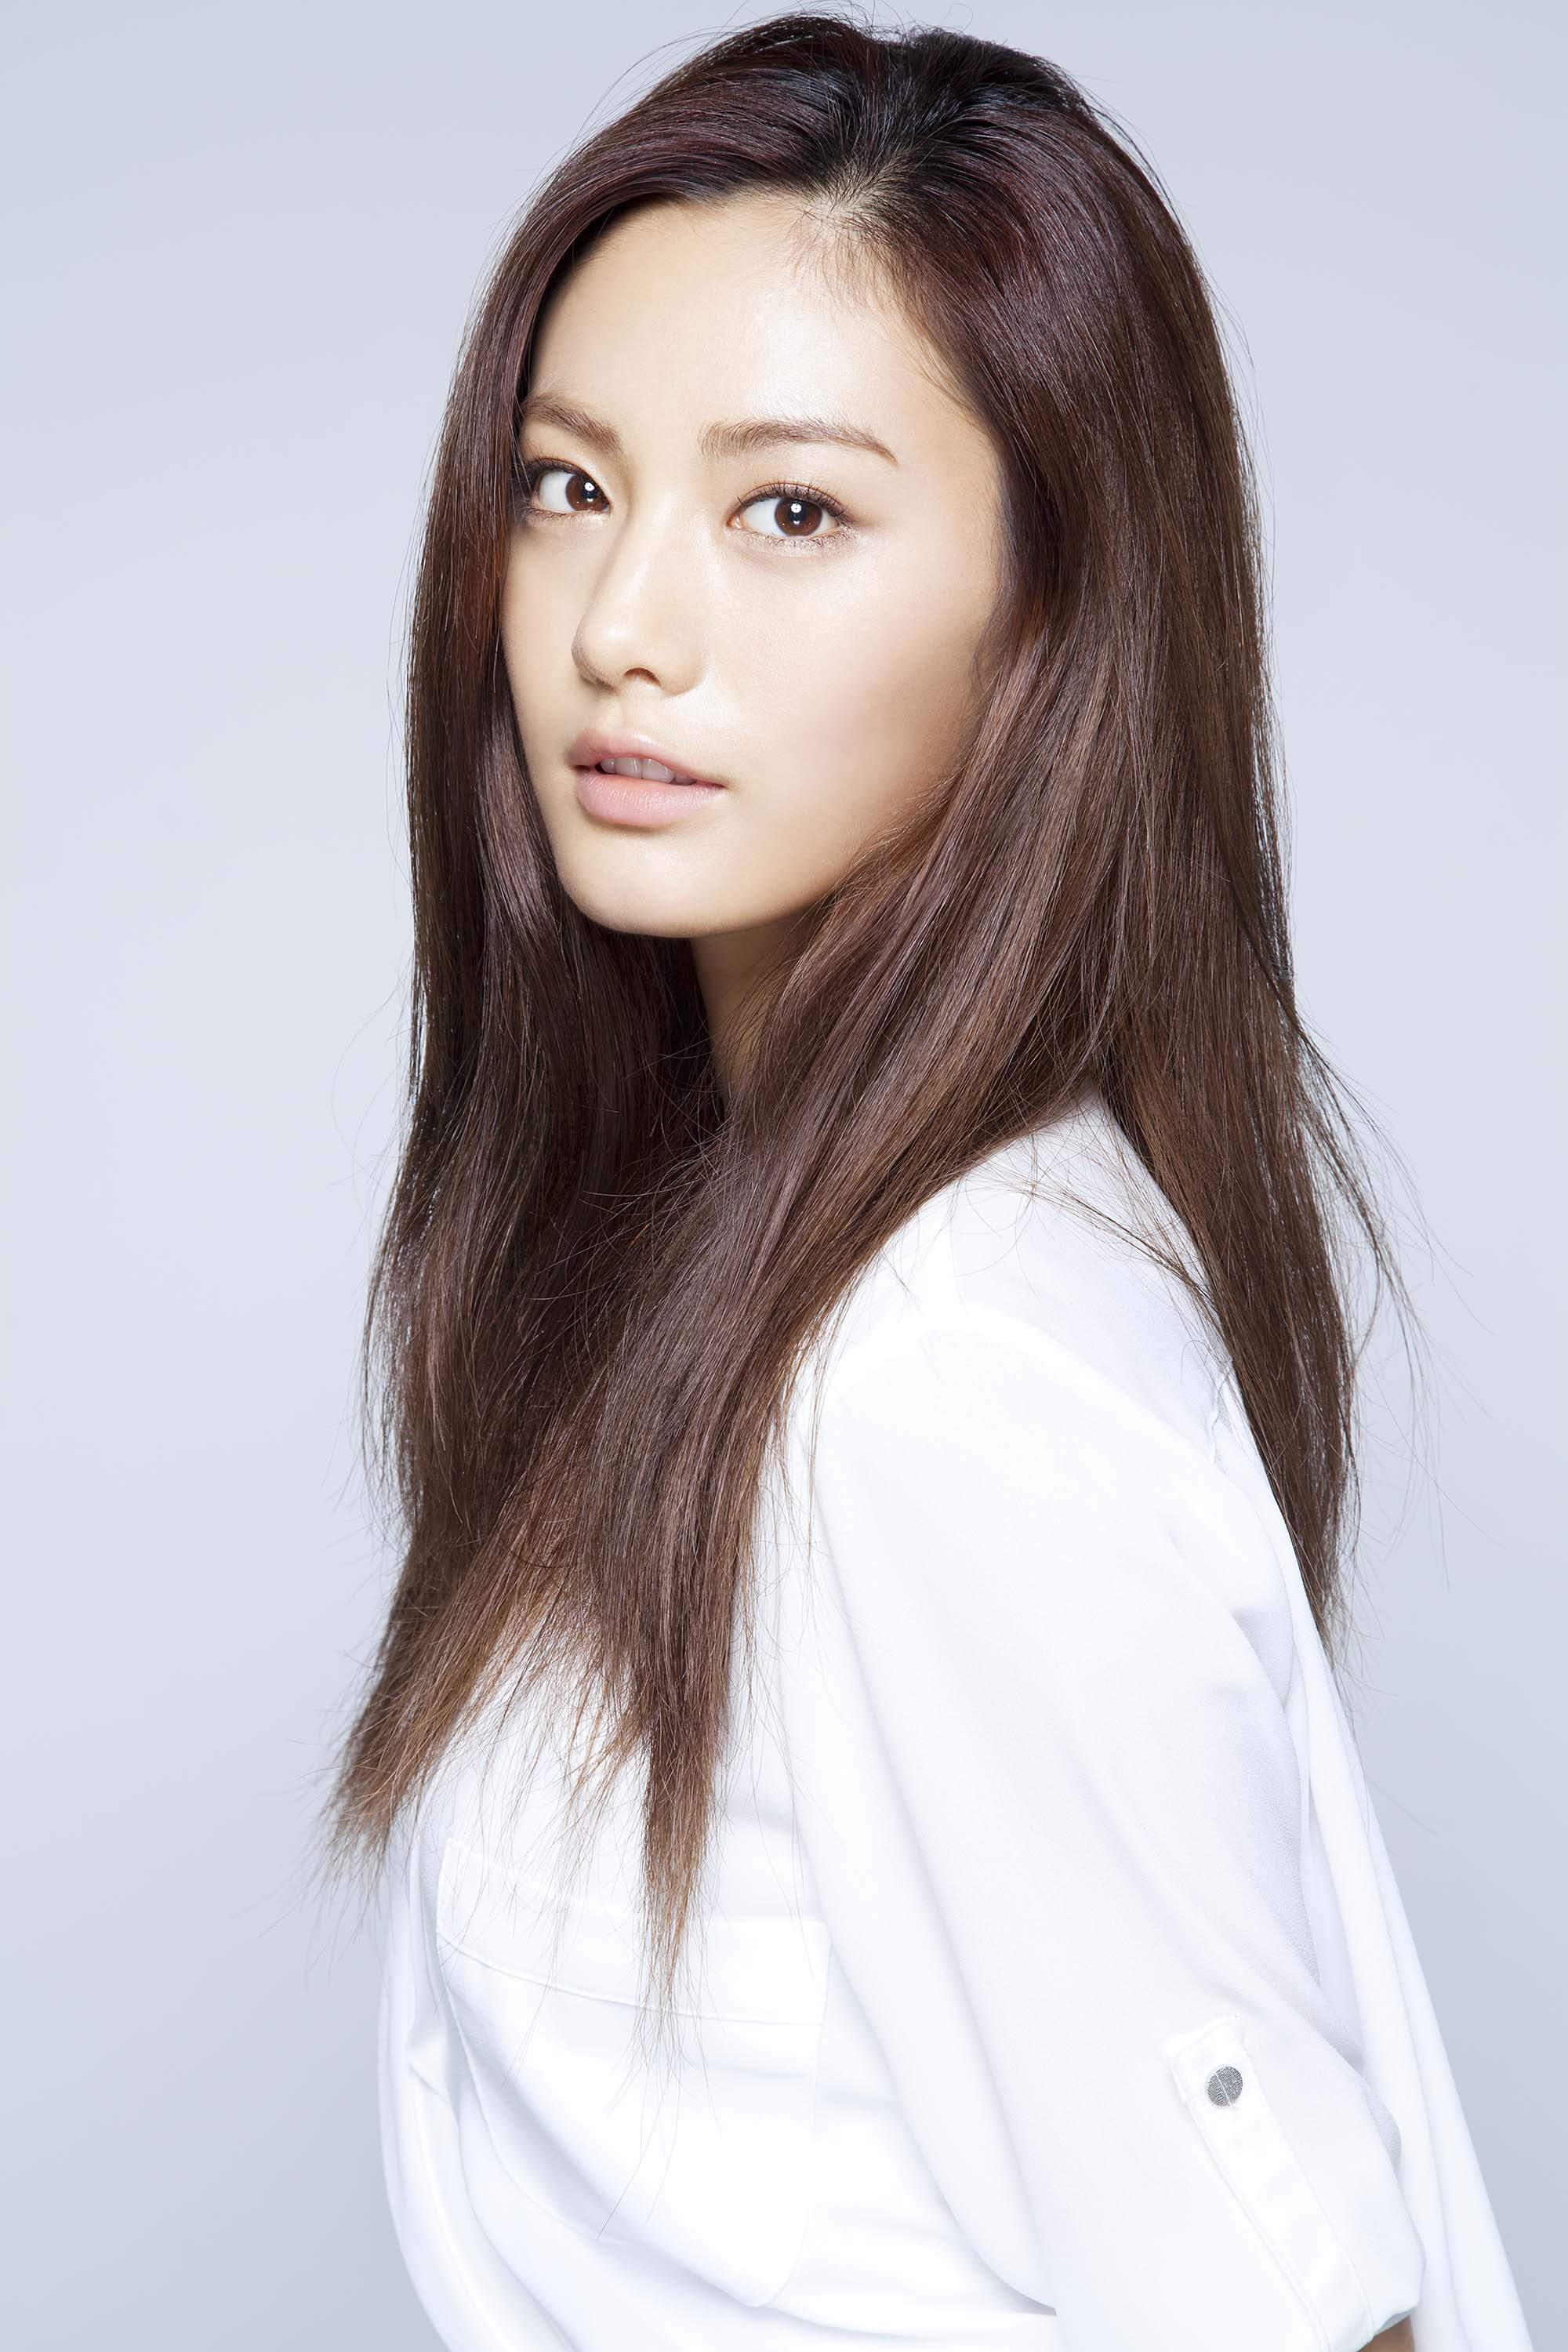 Nana Of After School